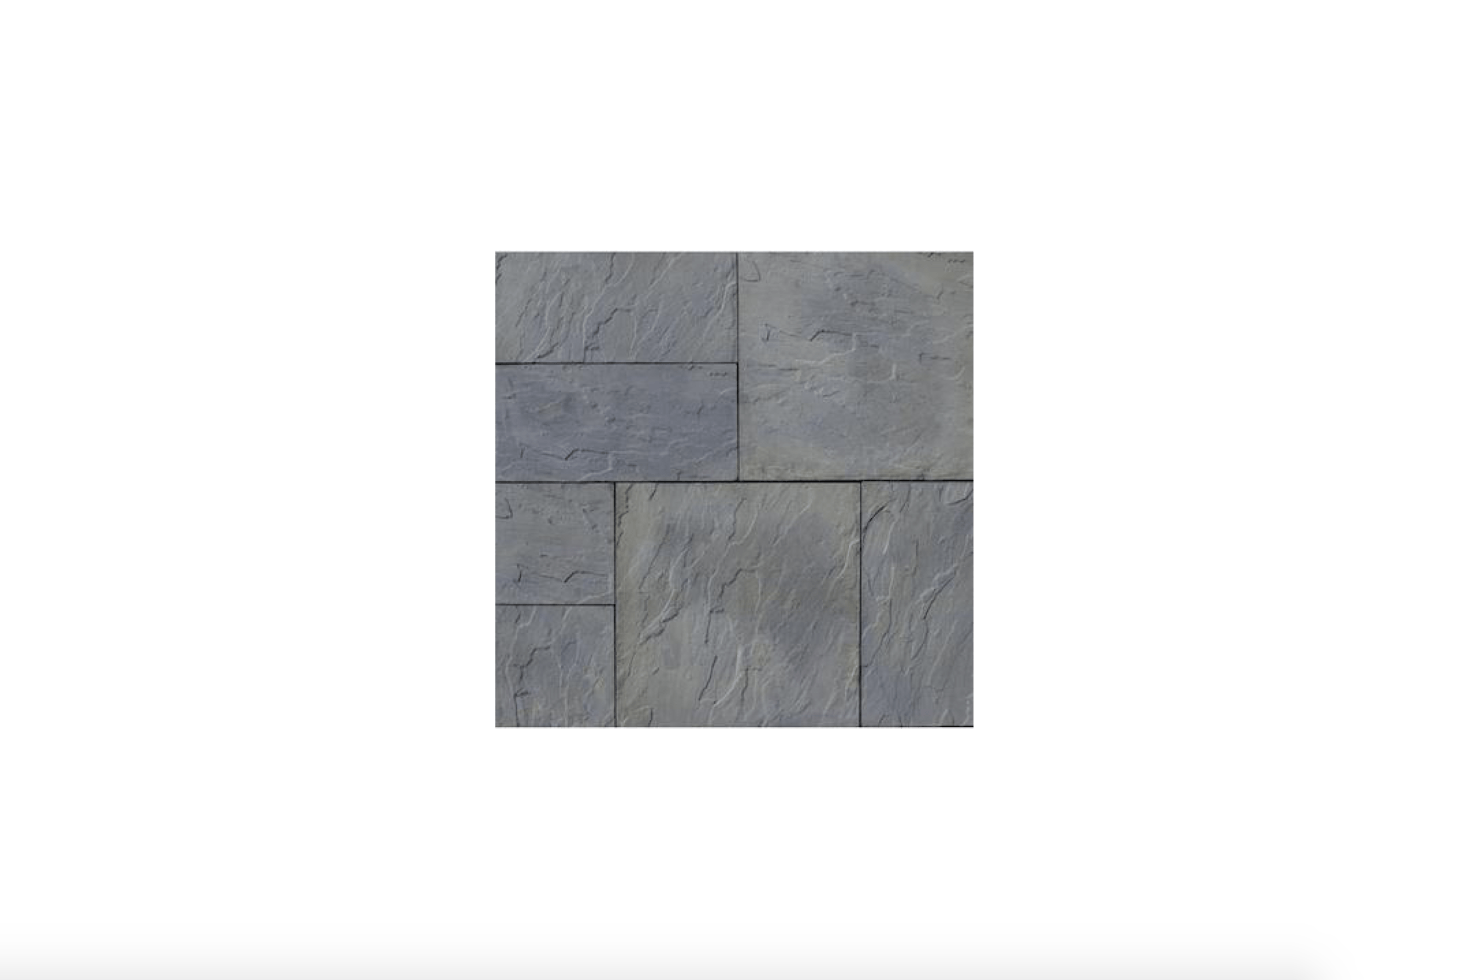 A 48-square-foot pallet of Variegated Basketweave York Stone Pavers, available in two sizes ( by  inches is shown); $3src=